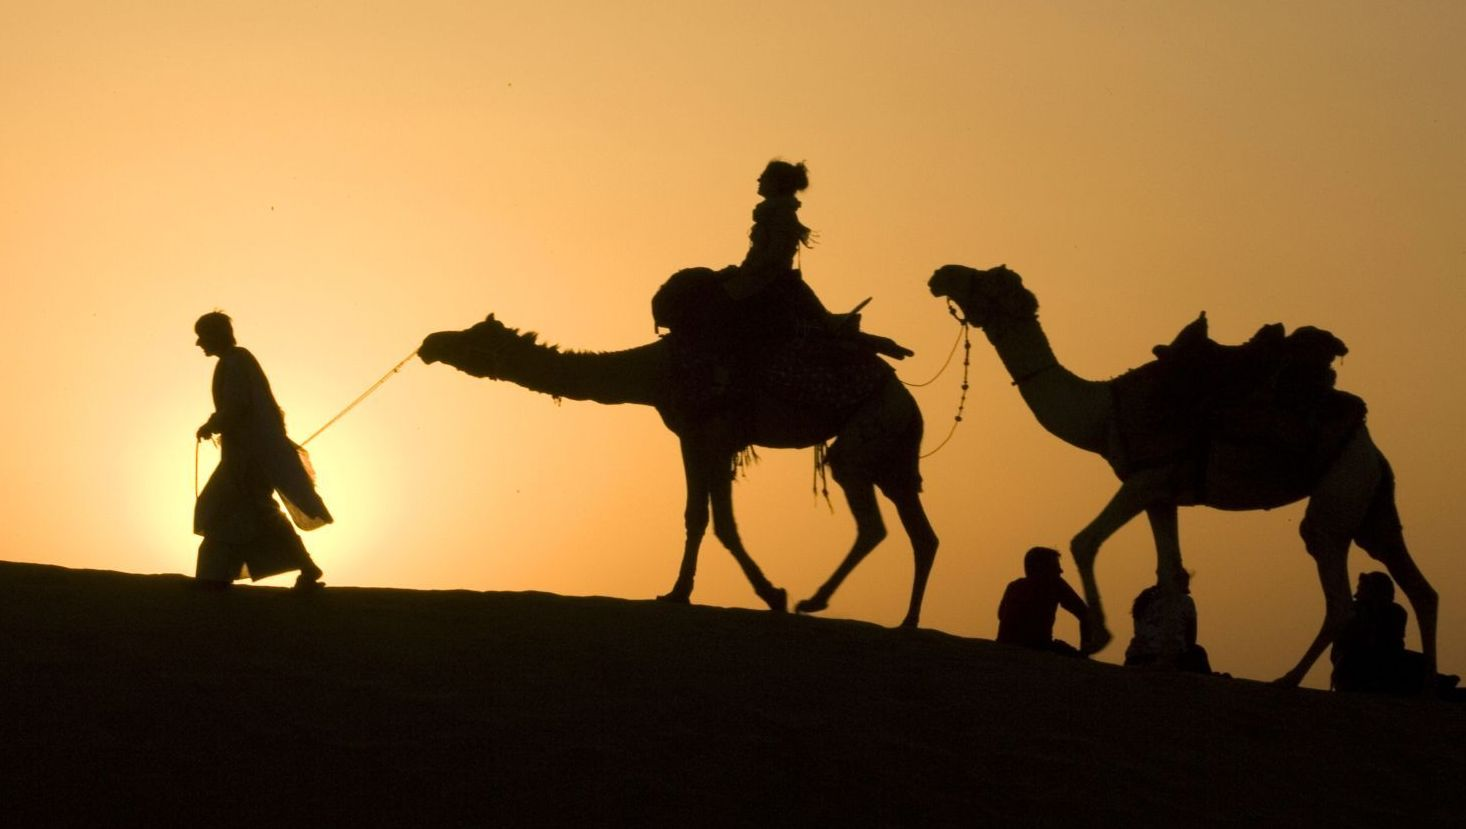 Riding a Camel in India